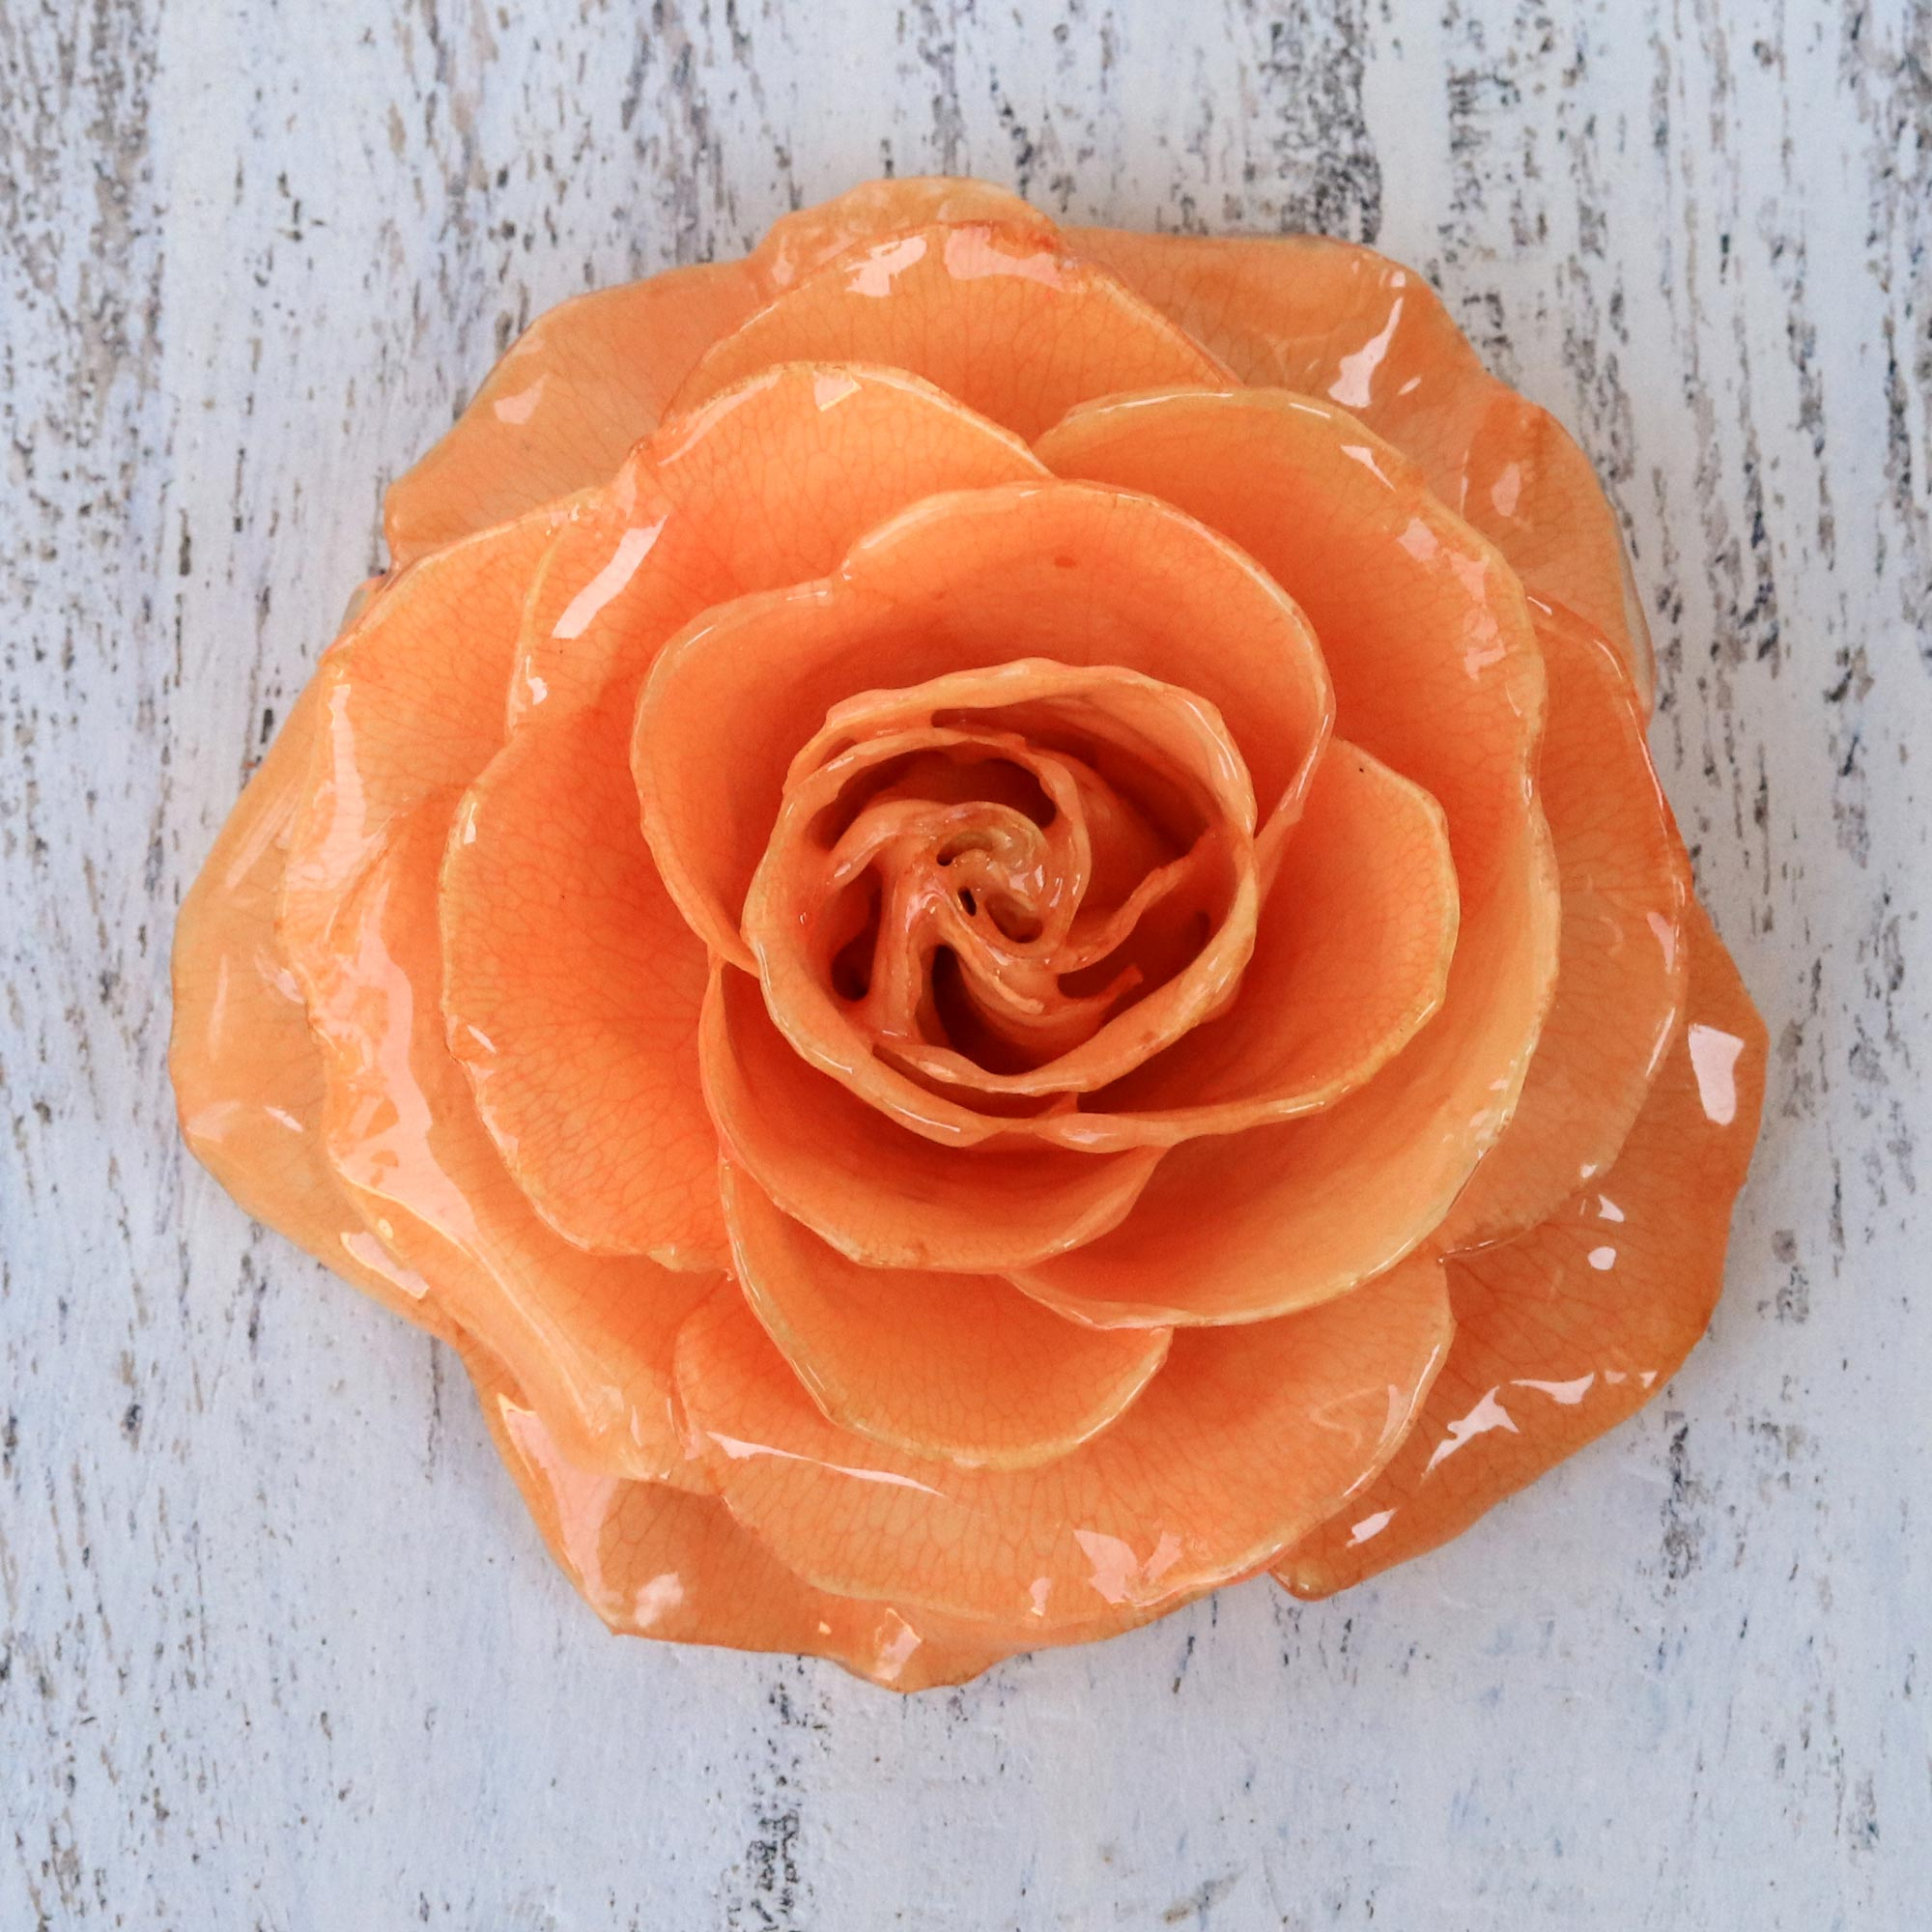 Artisan Crafted Natural Rose Brooch in Peach from Thailand, 'Rosy Mood in Peach' wedding day jewelry